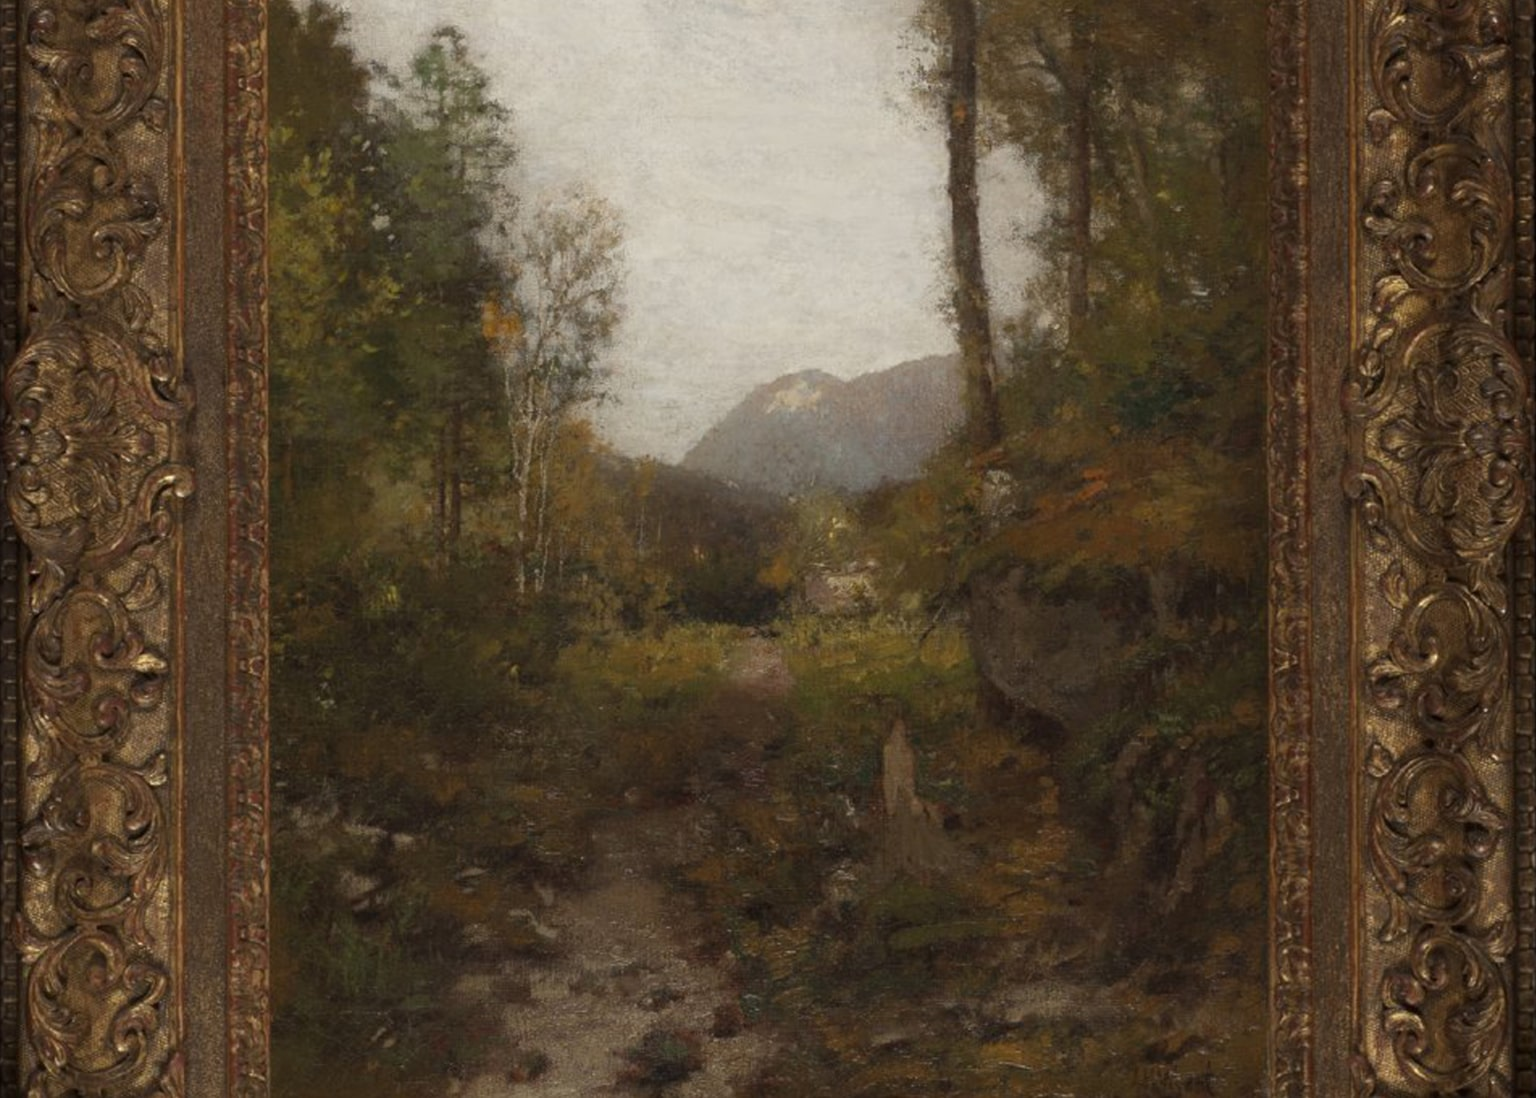 A cropped image of a painting by Adirondack landscapist Alexander H. Wyant.